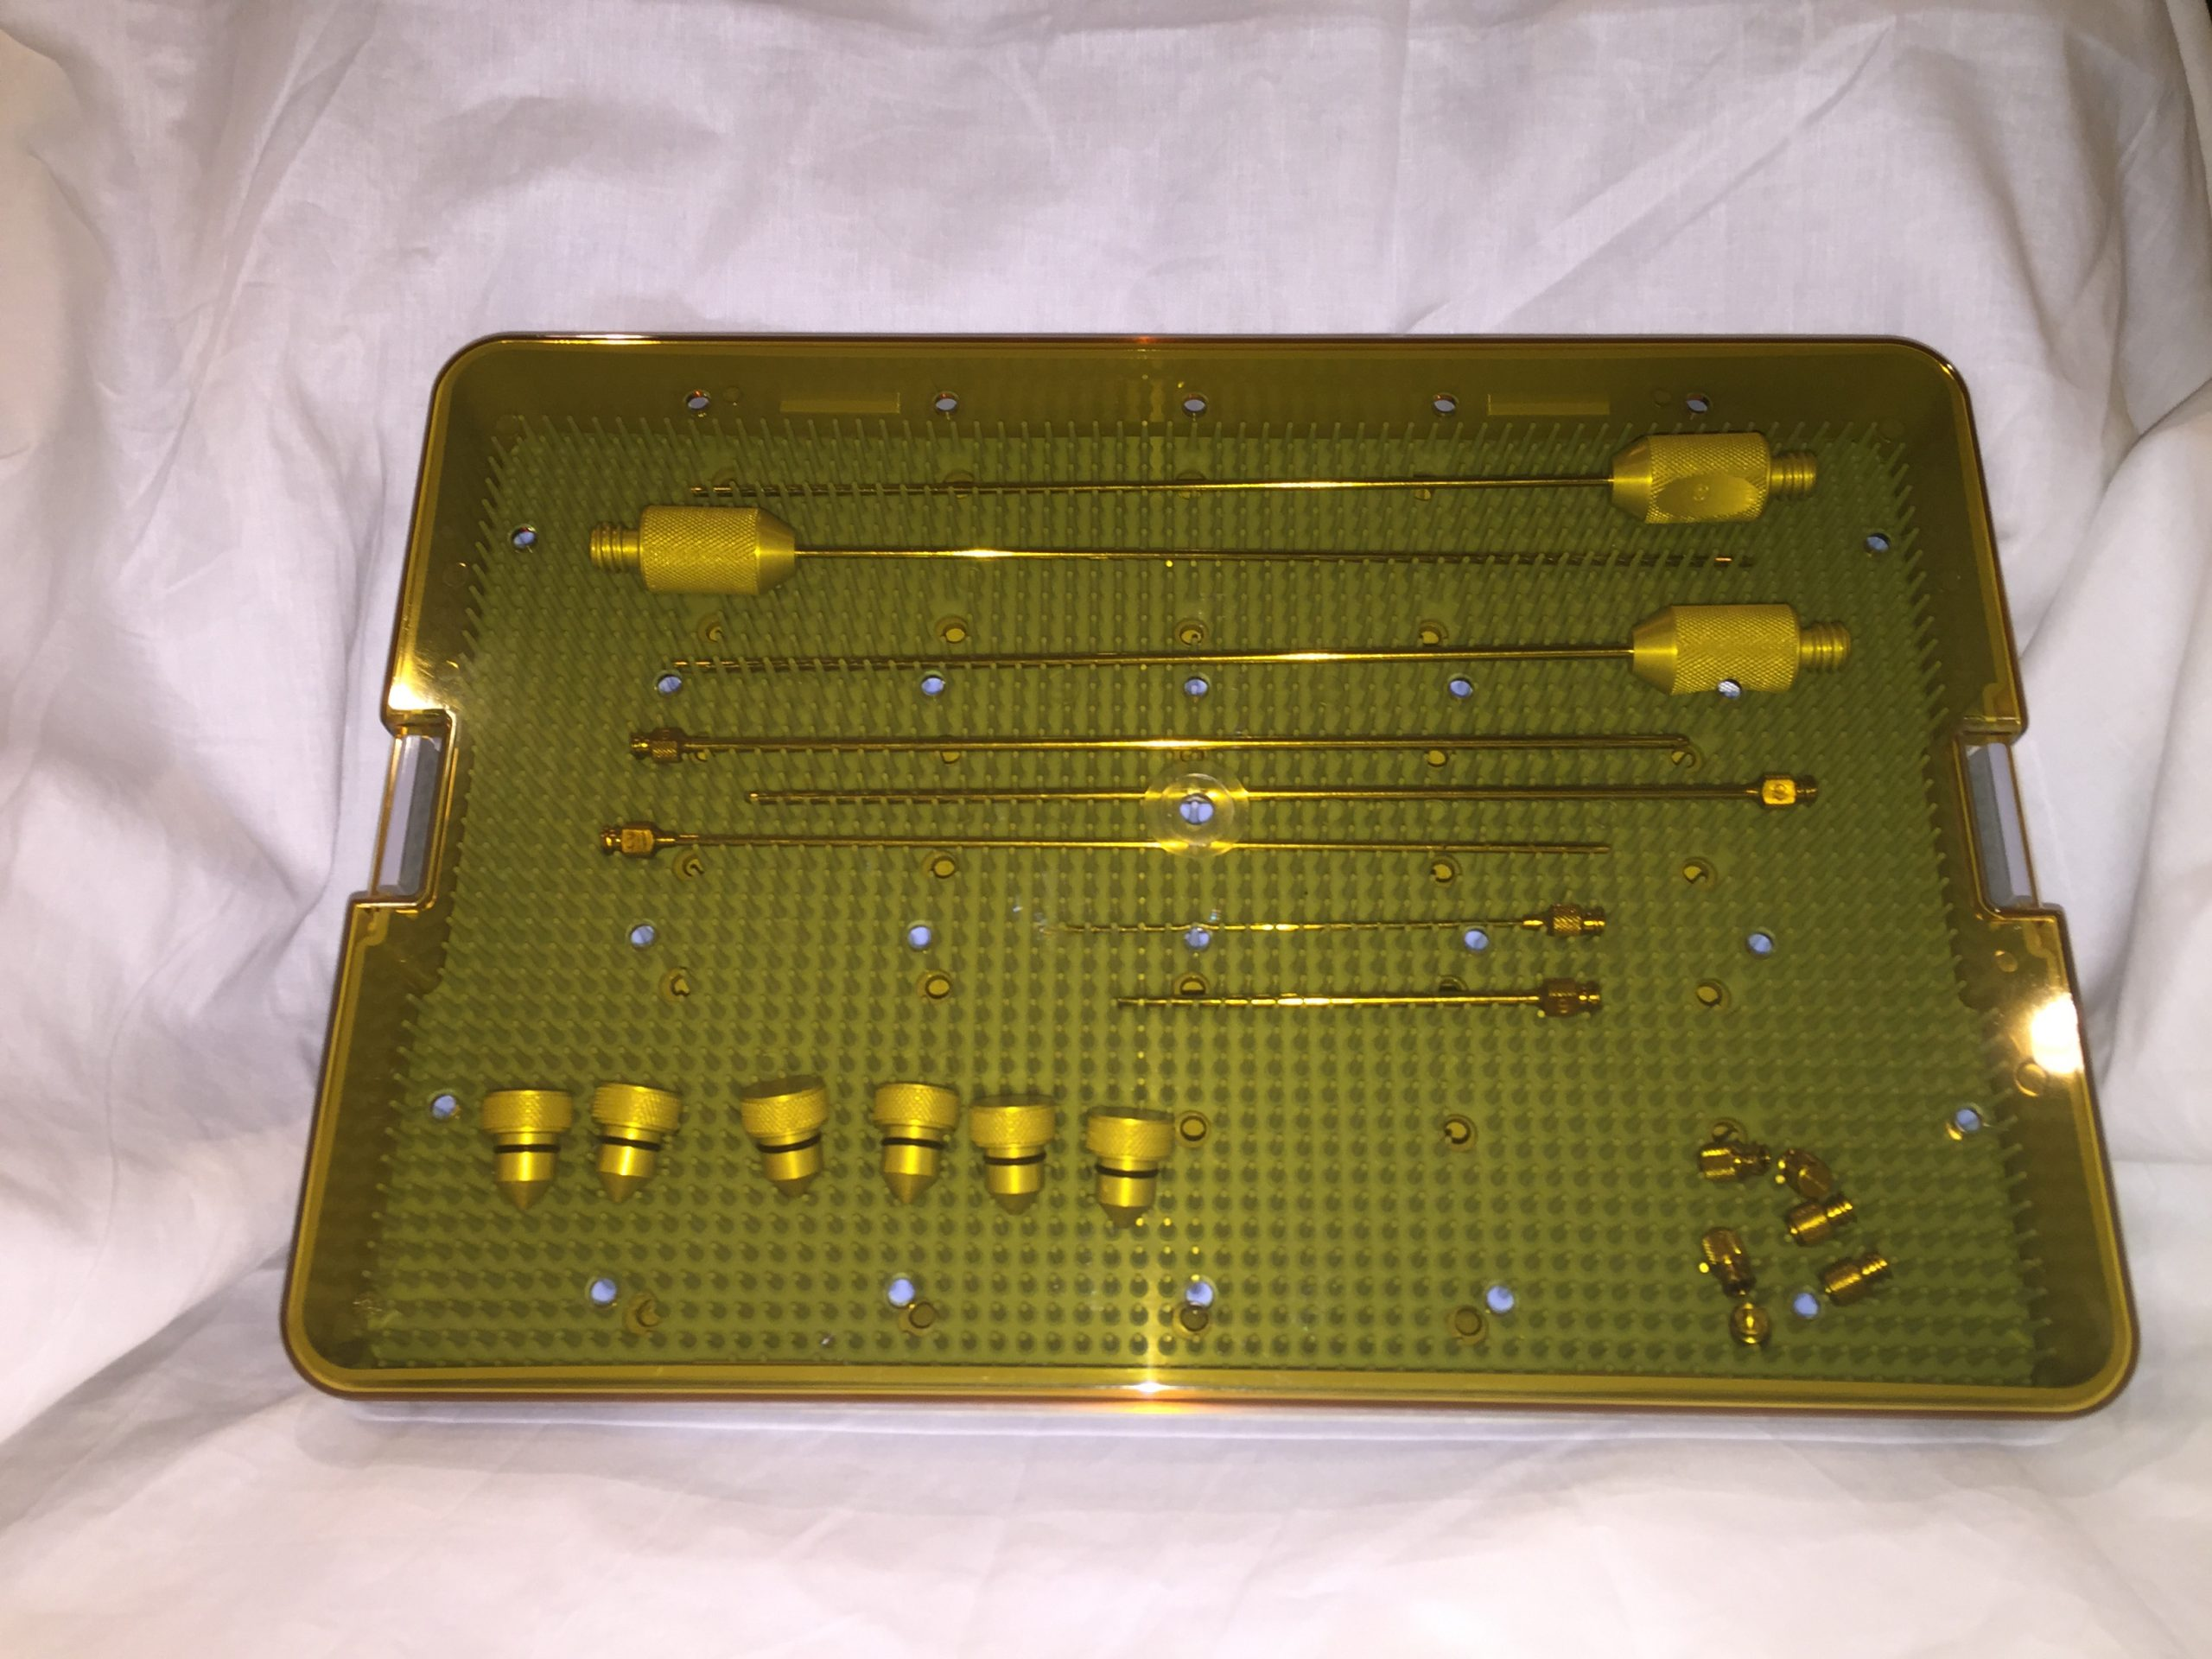 Sterilization tray with lid